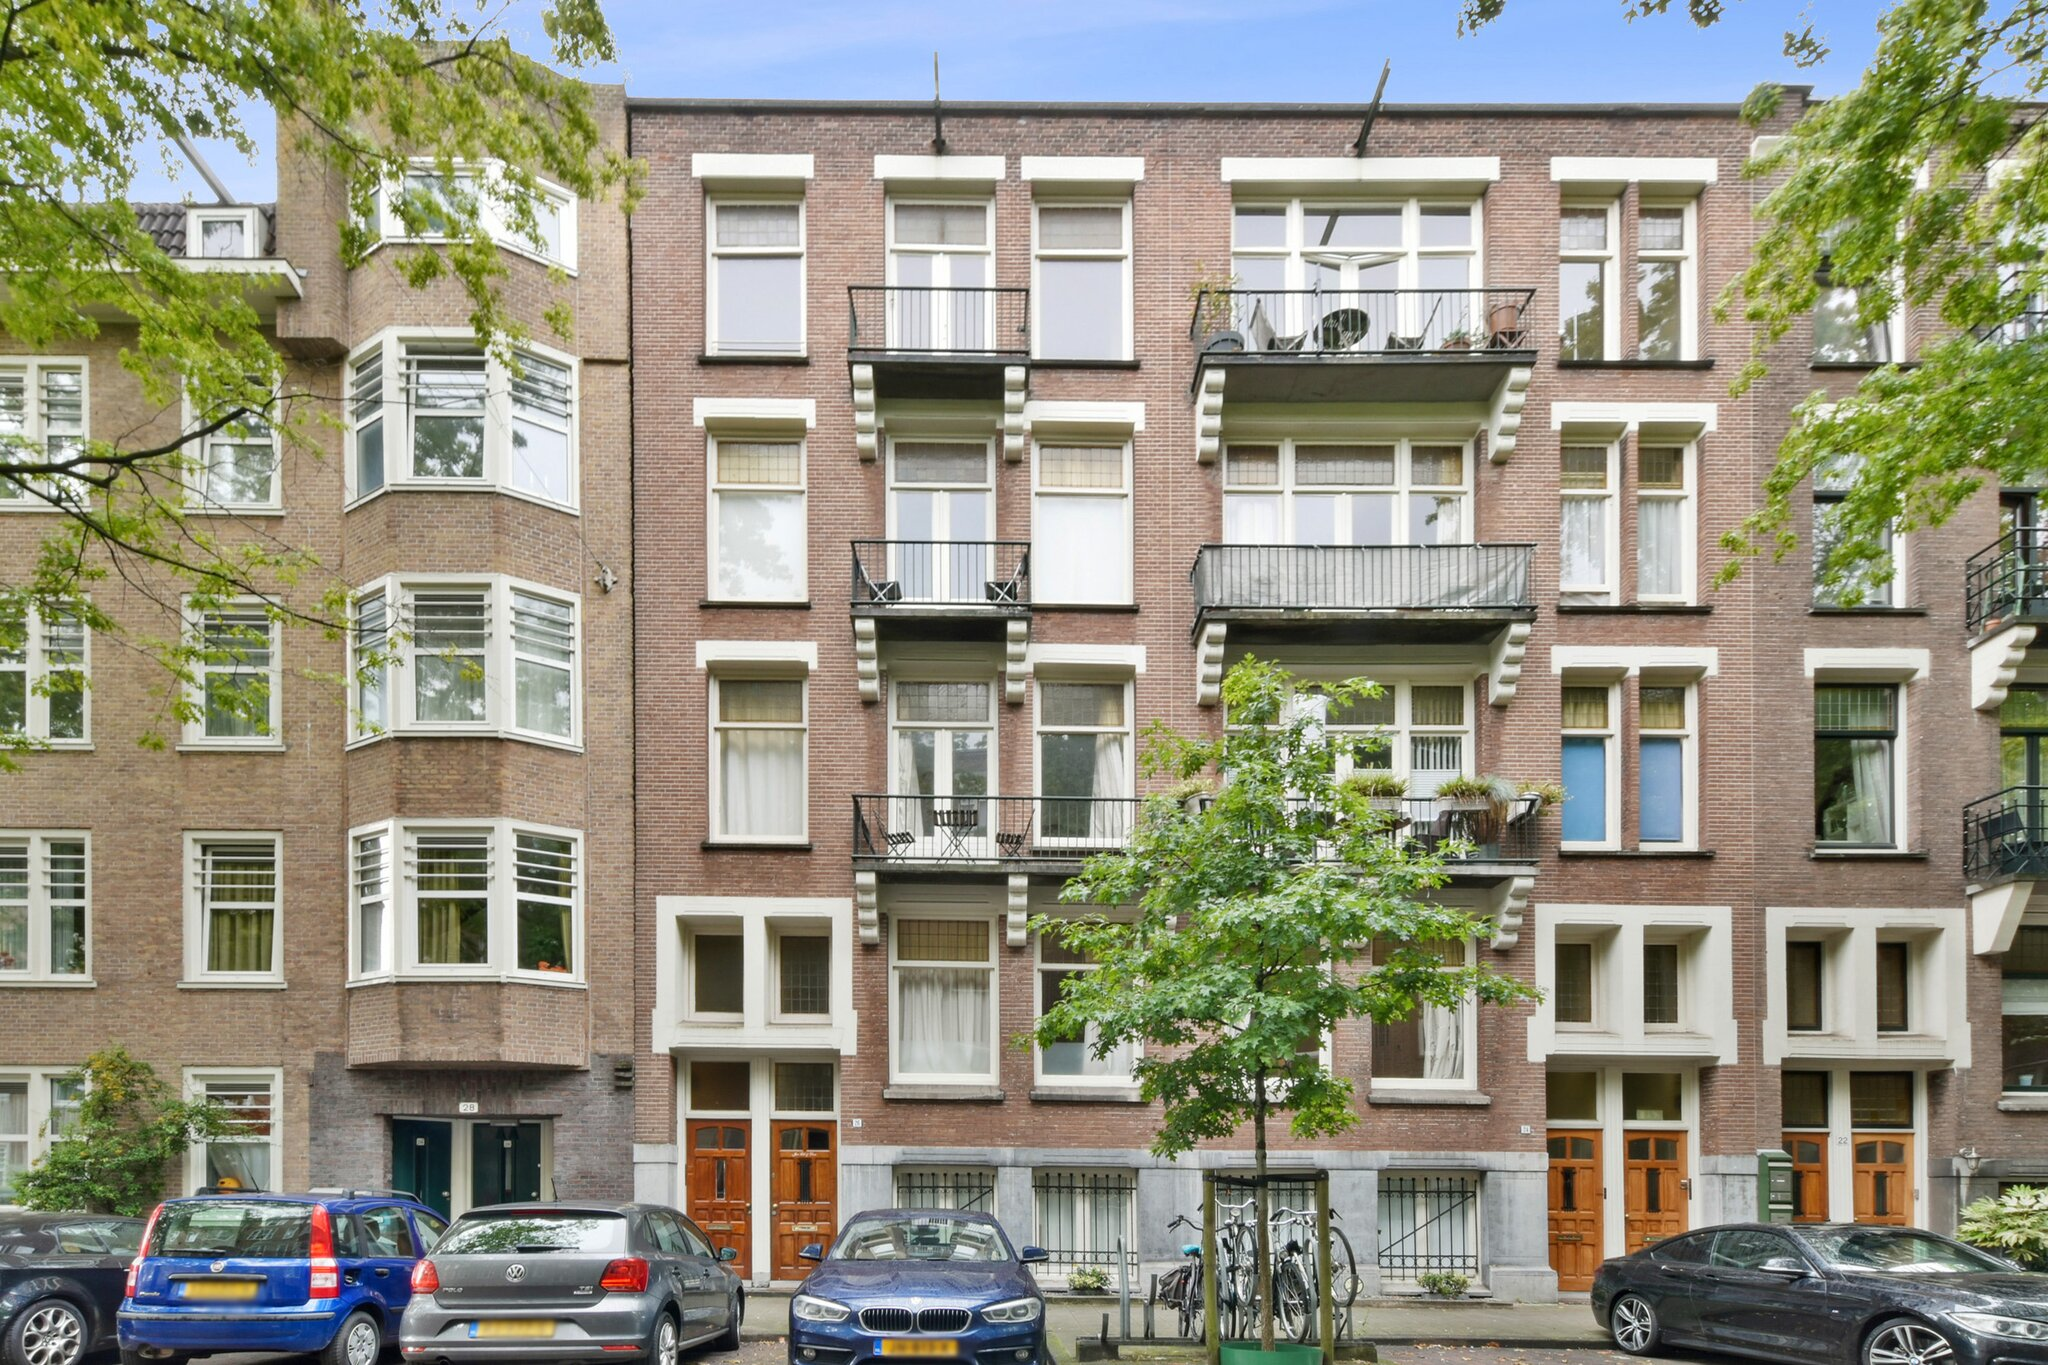 Hendrik Jacobszstraat 26 lll